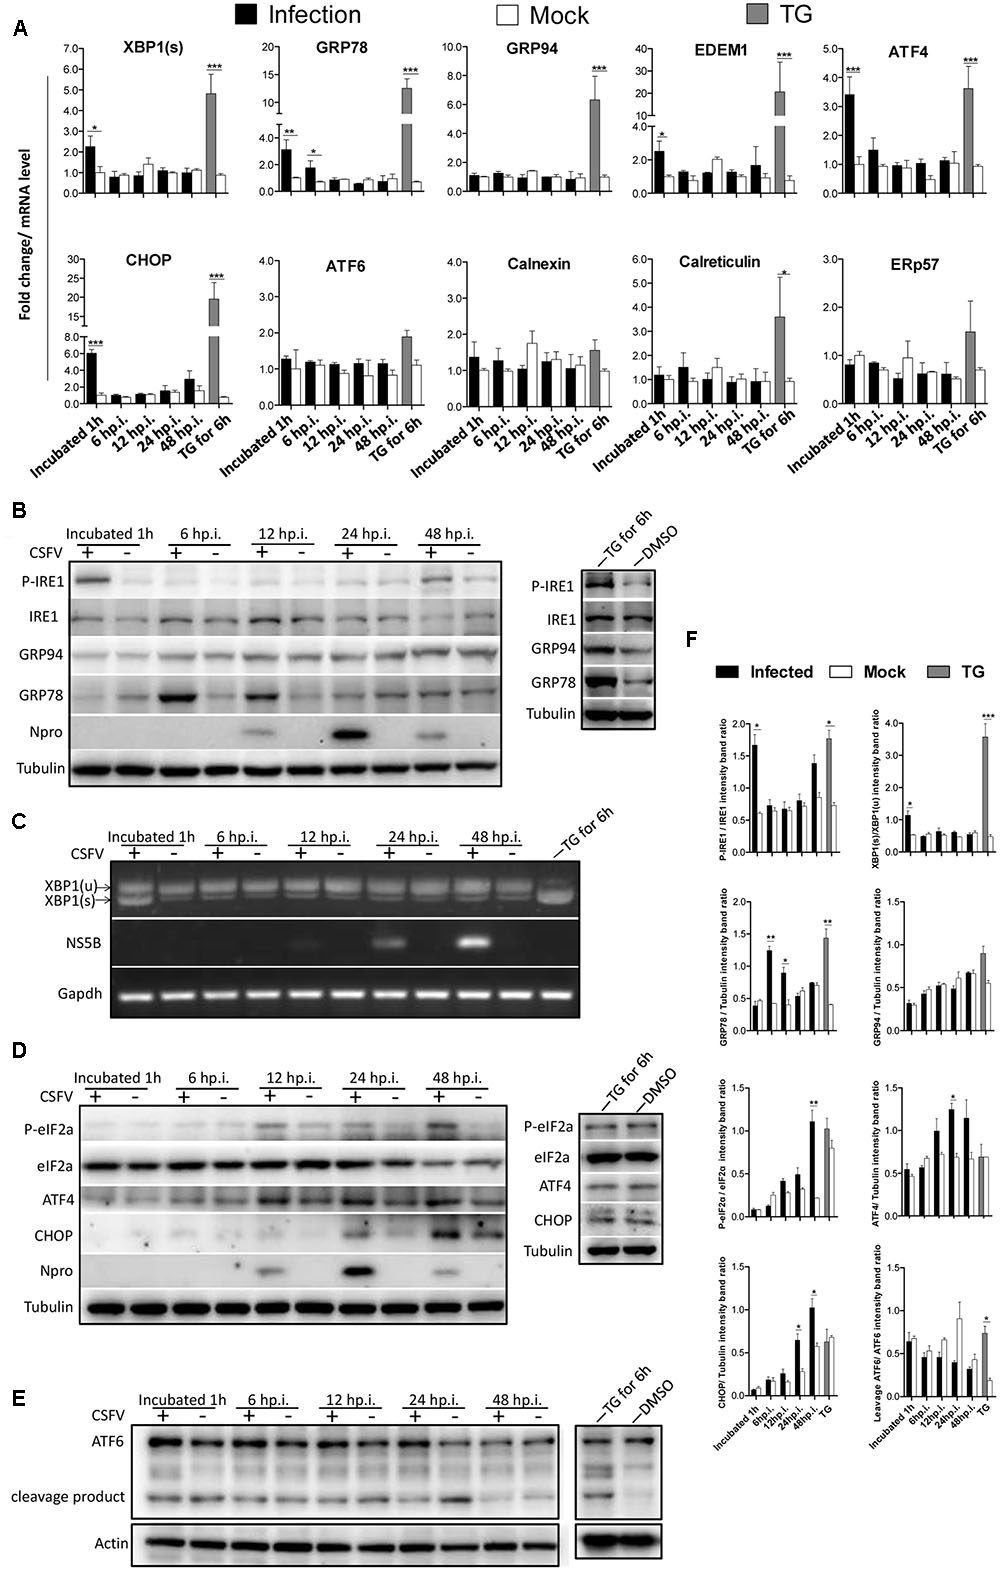 Frontiers | CSFV Infection Up-Regulates the Unfolded Protein